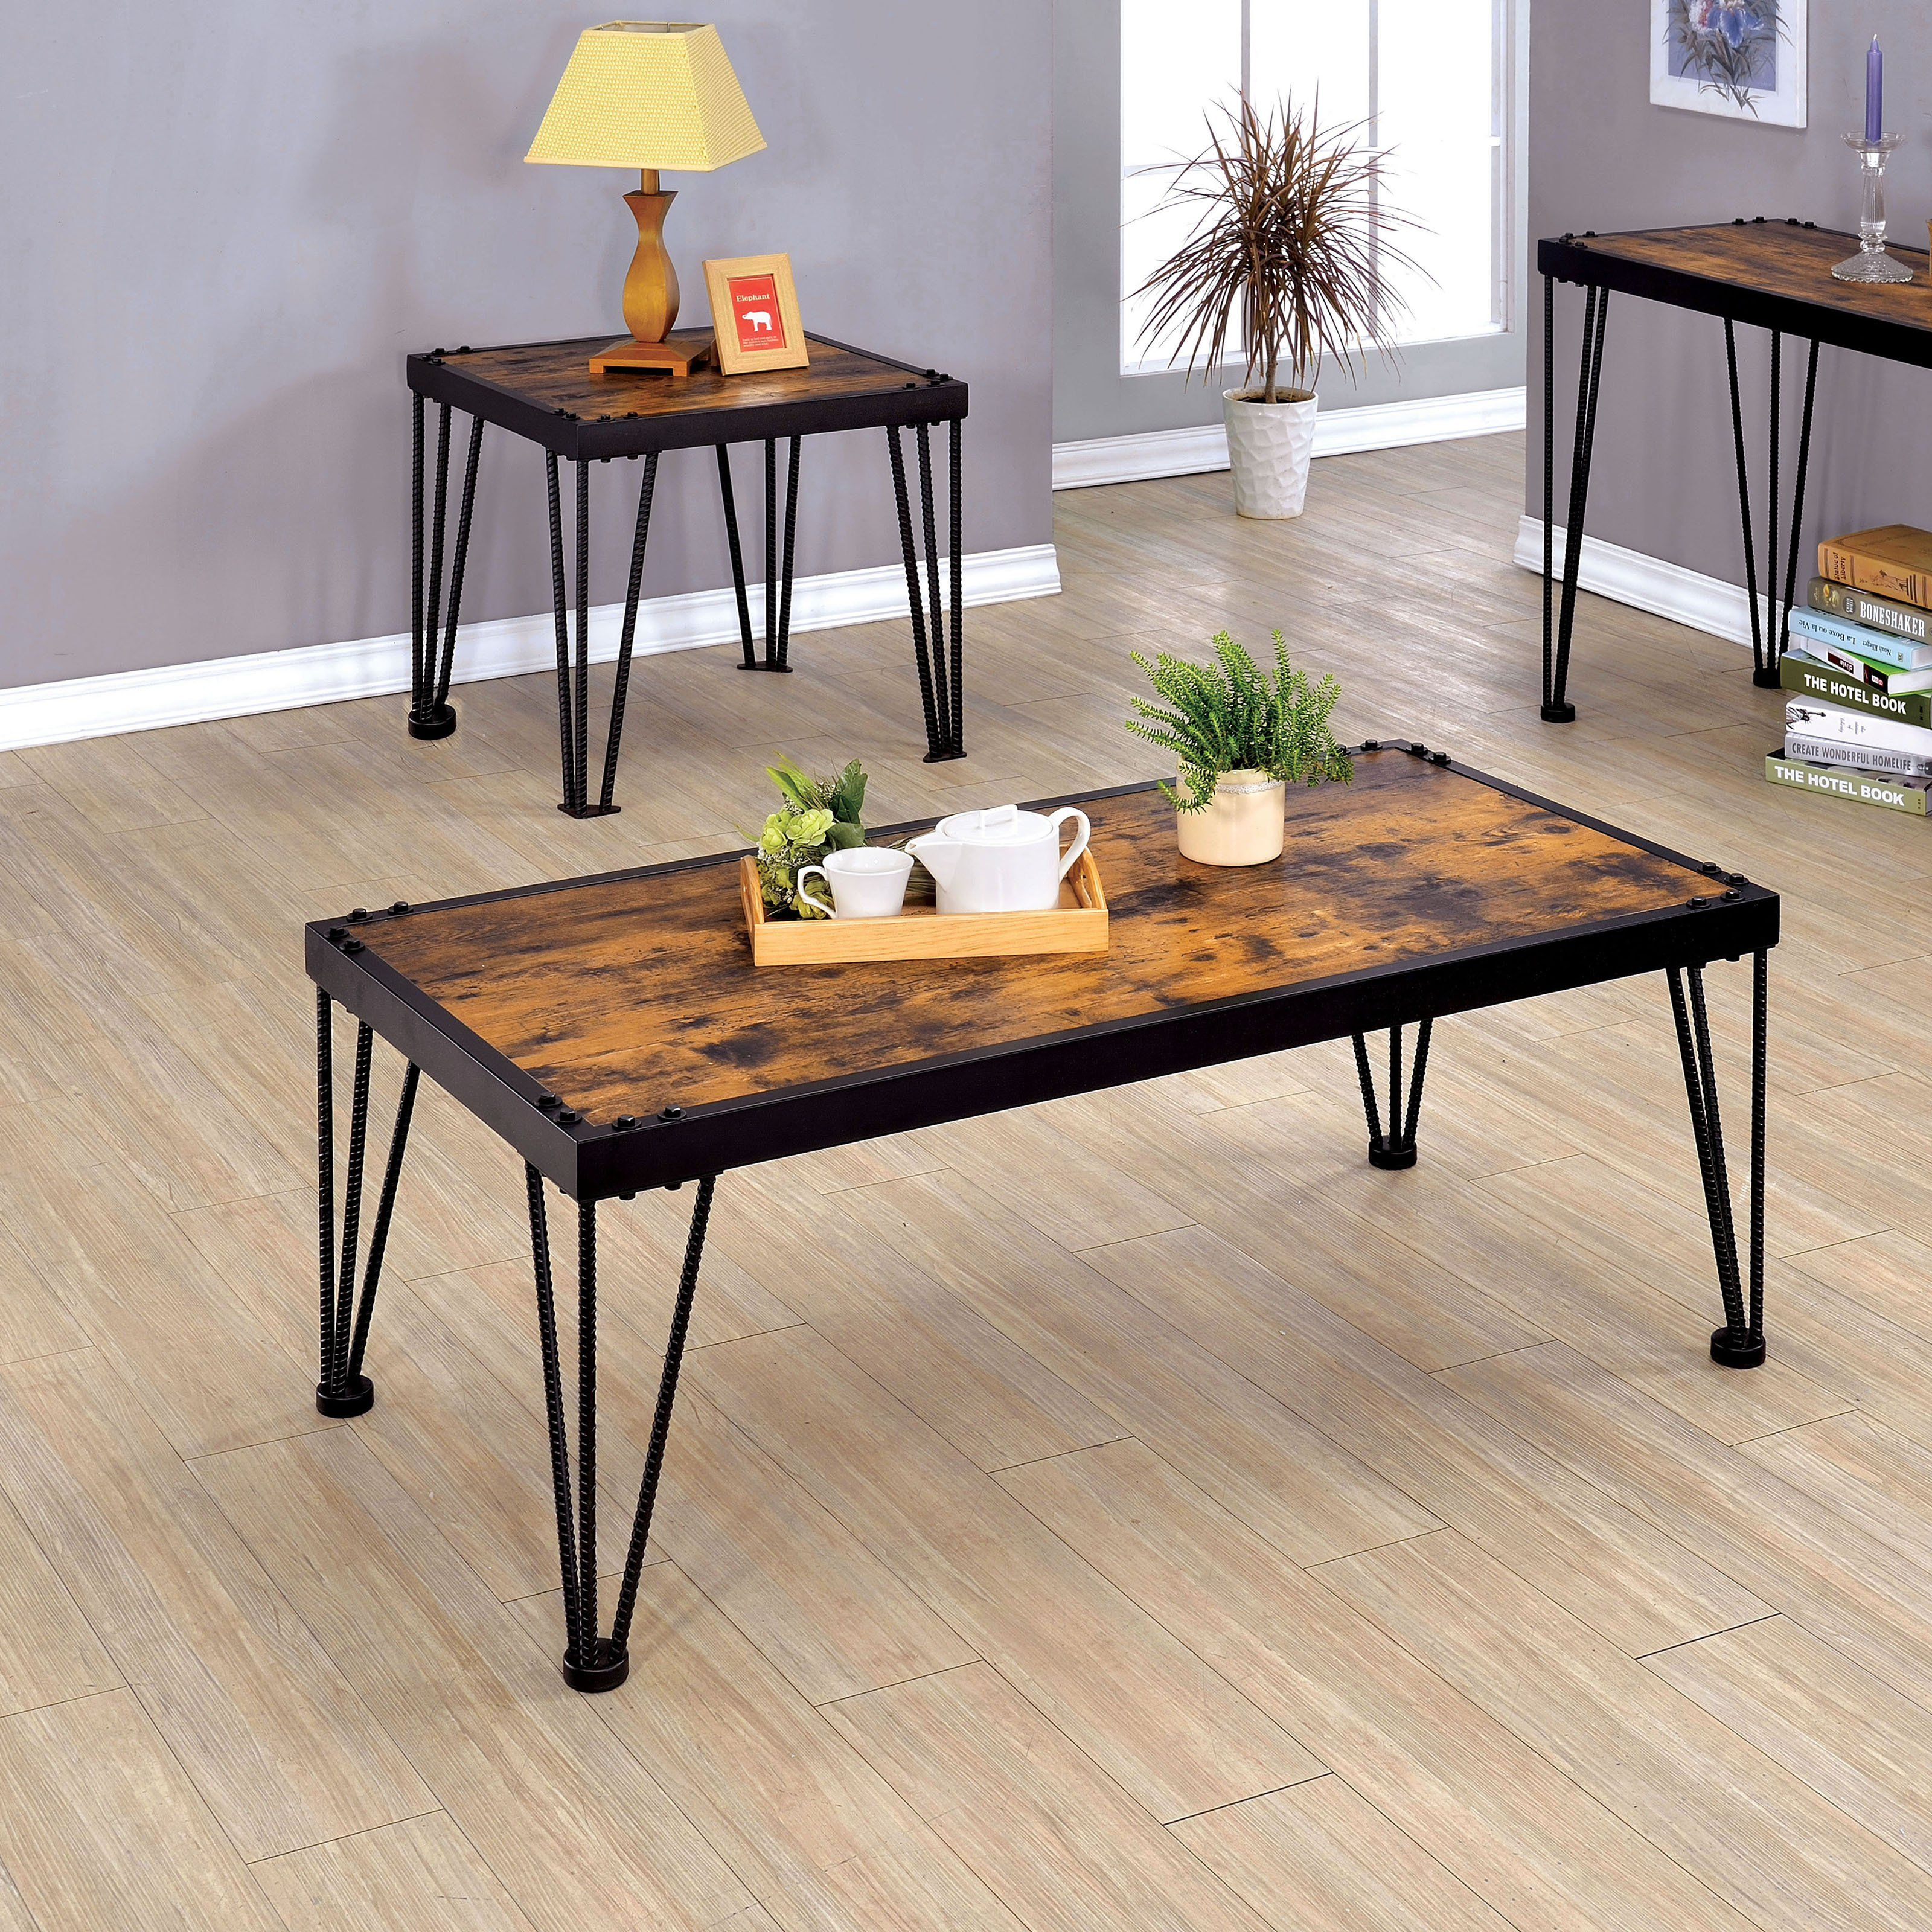 Furniture of America Marx Barred Leg 2 Piece Coffee Table Set